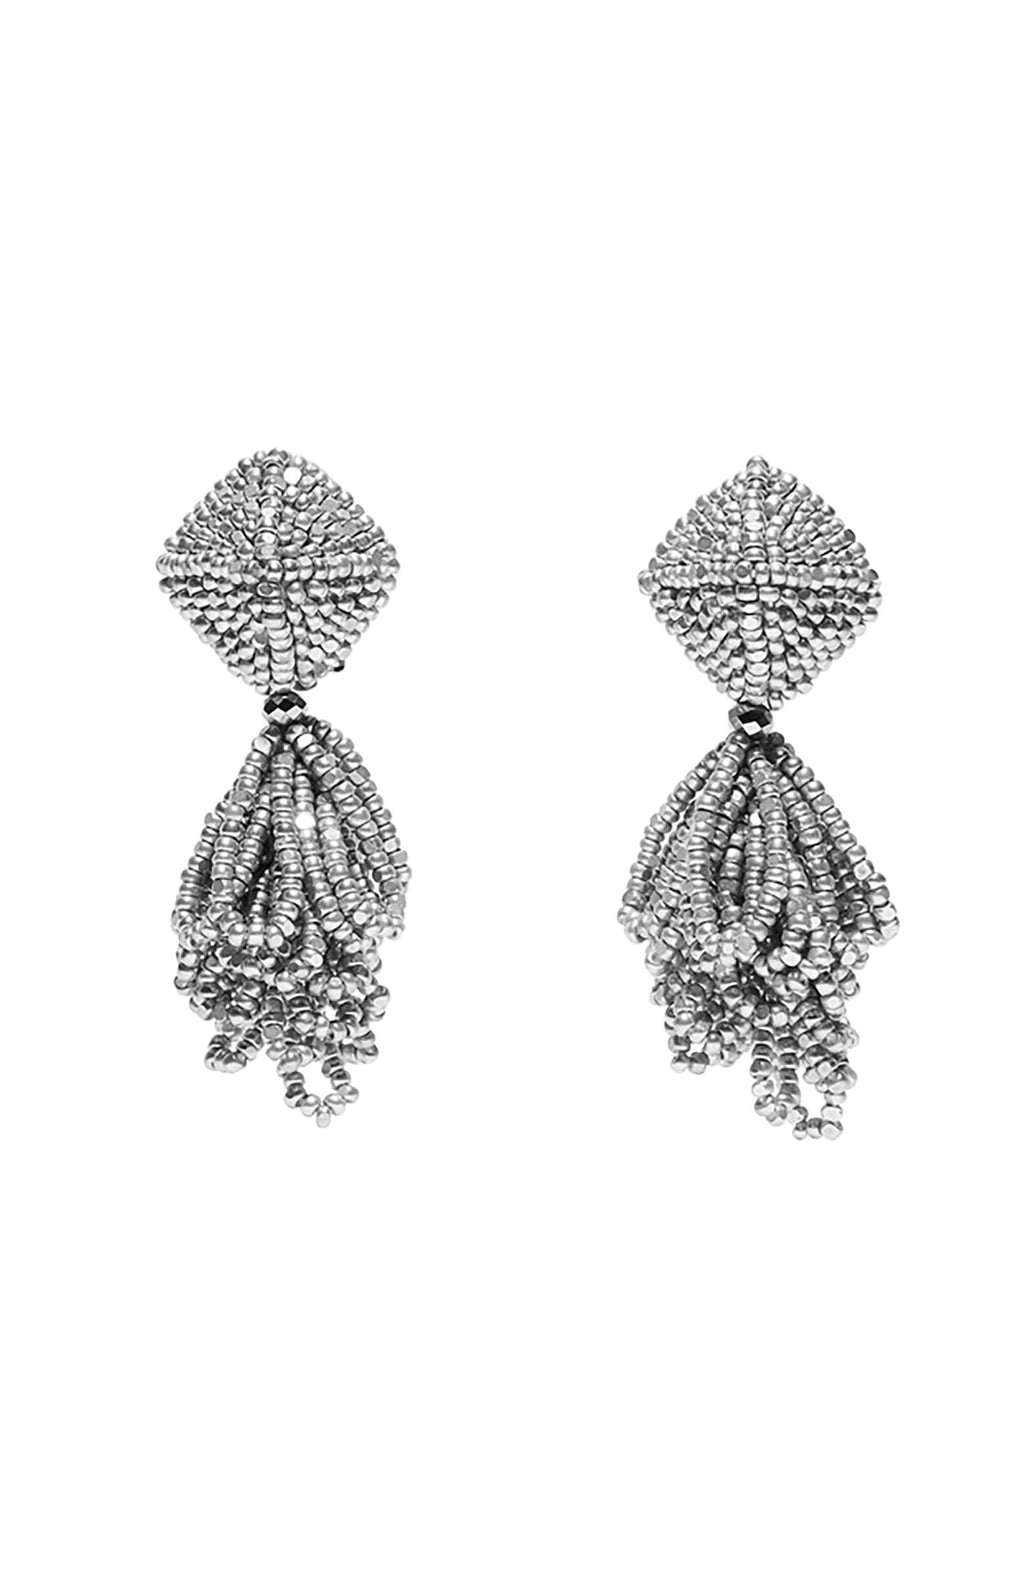 SACHIN & BABI Mini Lulu Earrings Silver. Pendants d'oreilles argentée